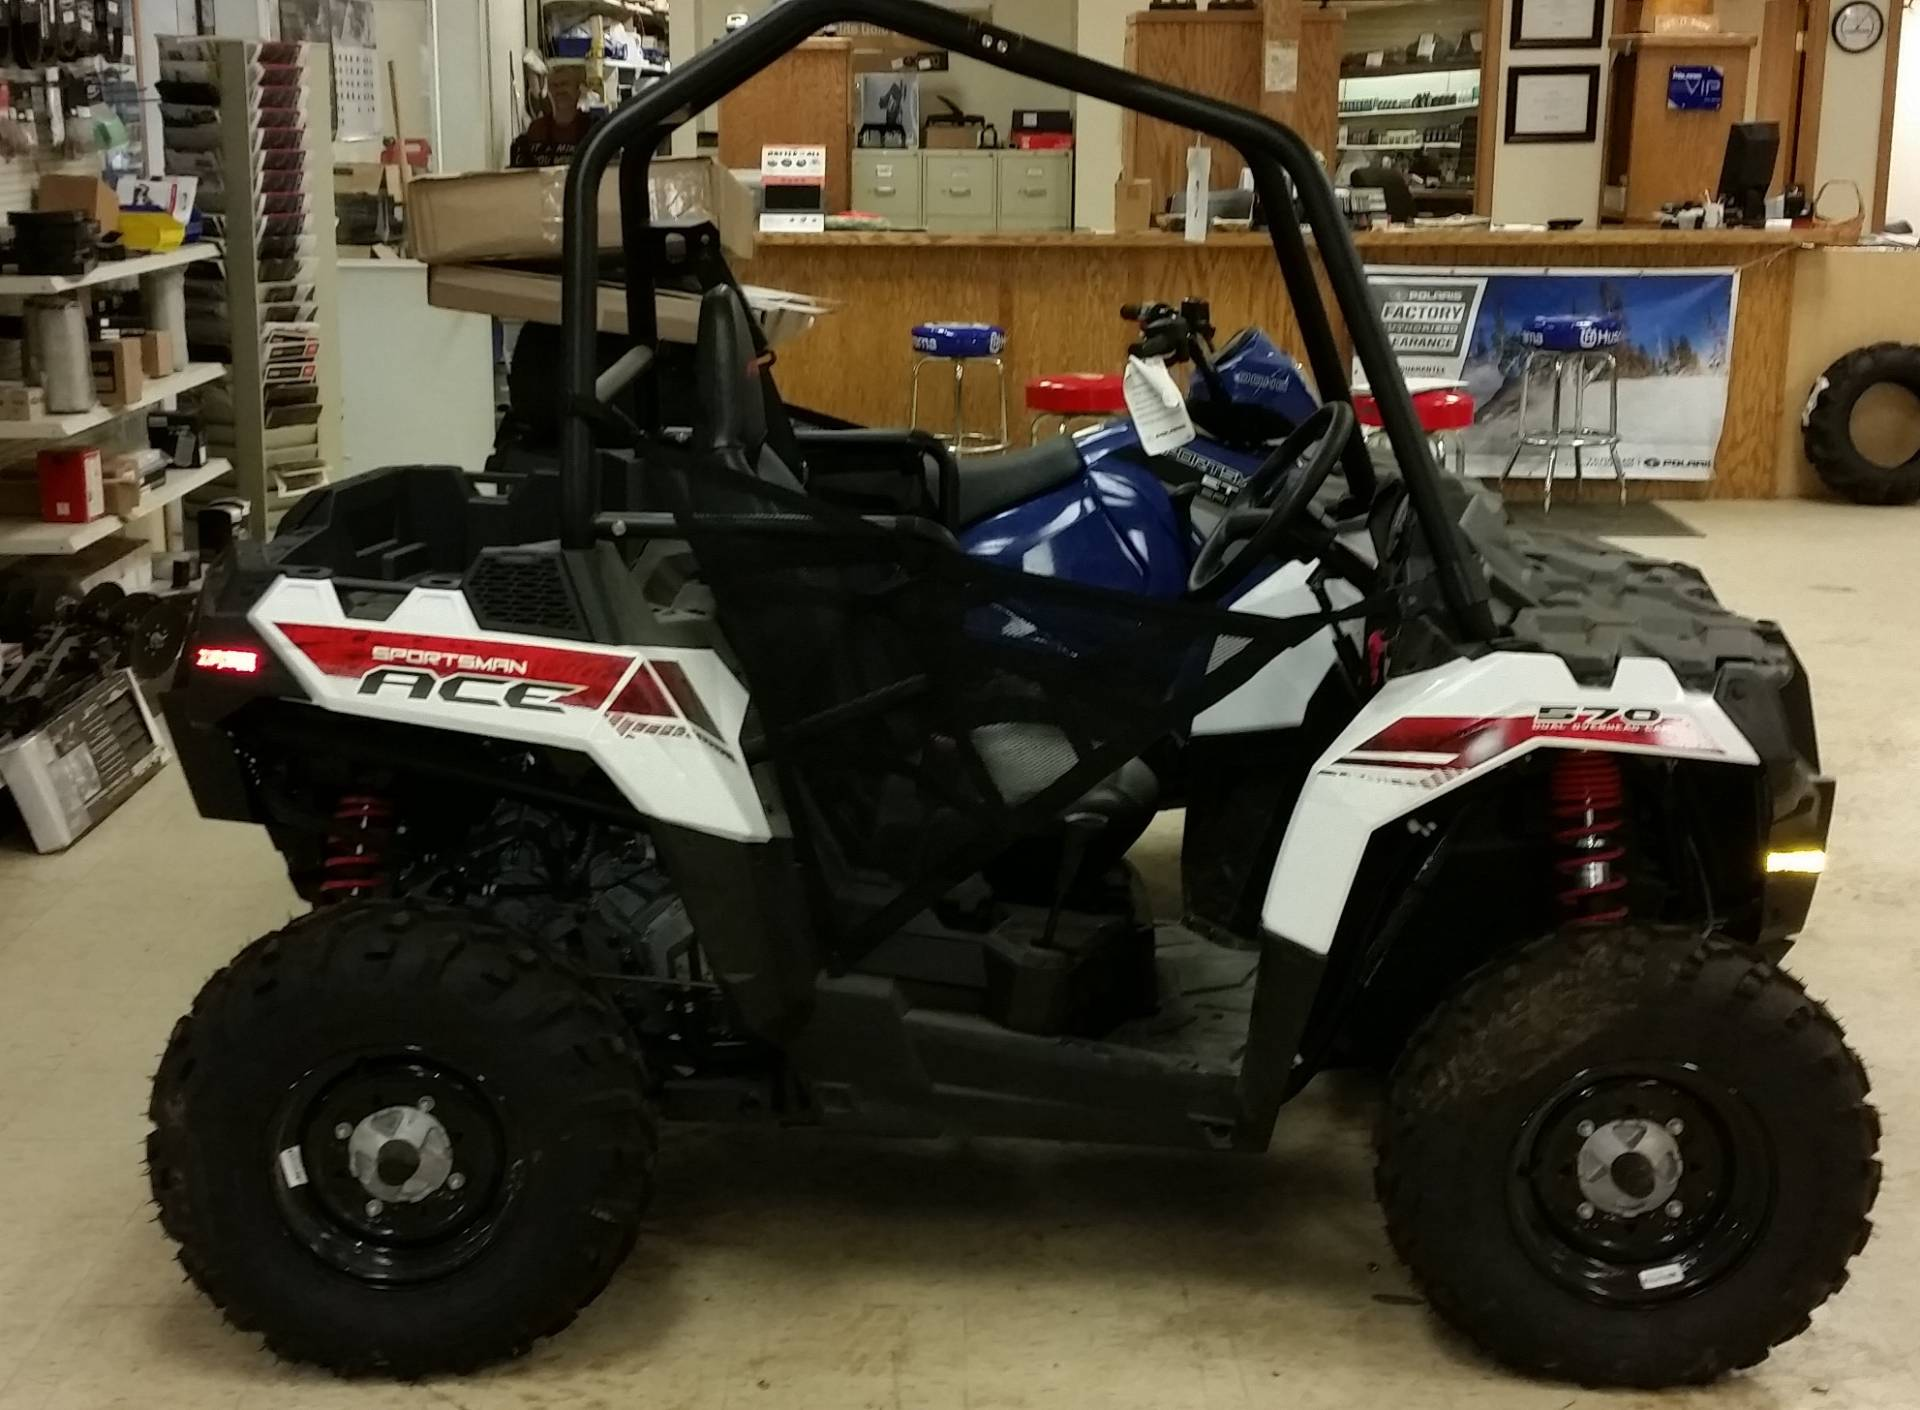 2015 Polaris ACE™ 570 in Bigfork, Minnesota - Photo 3